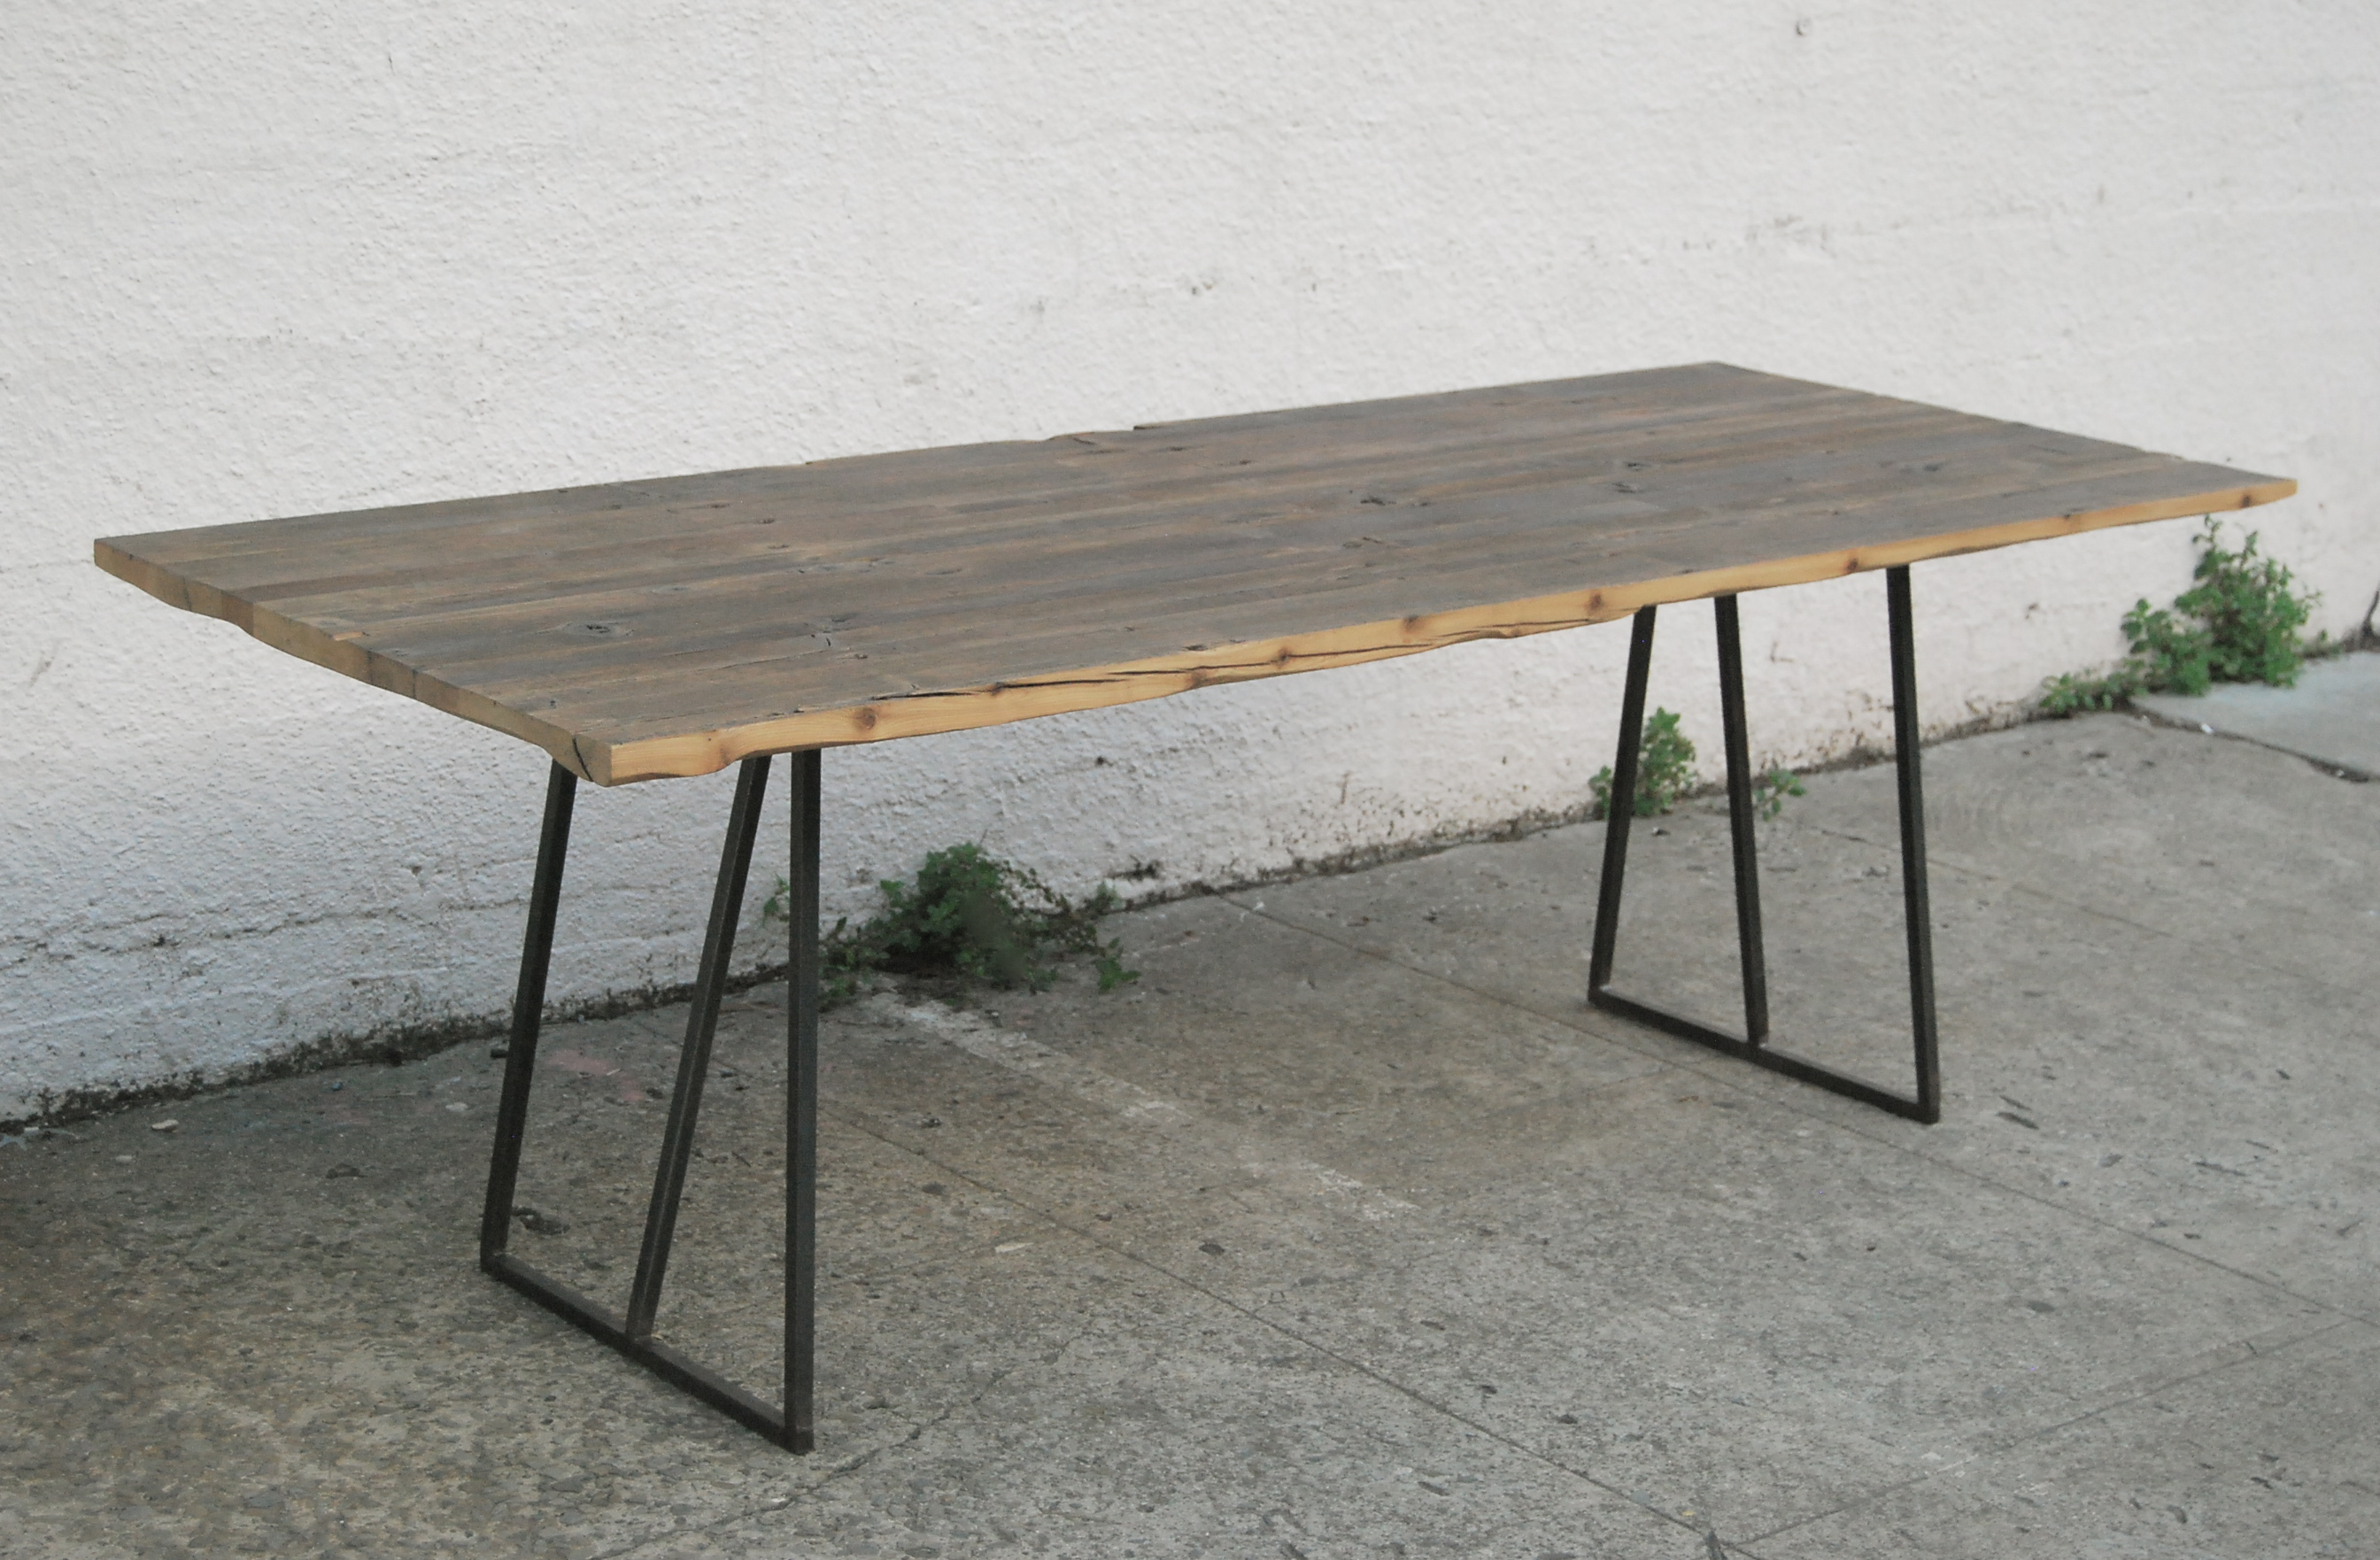 industrial kitchen table furniture. industrial reason furniture design kitchen table r